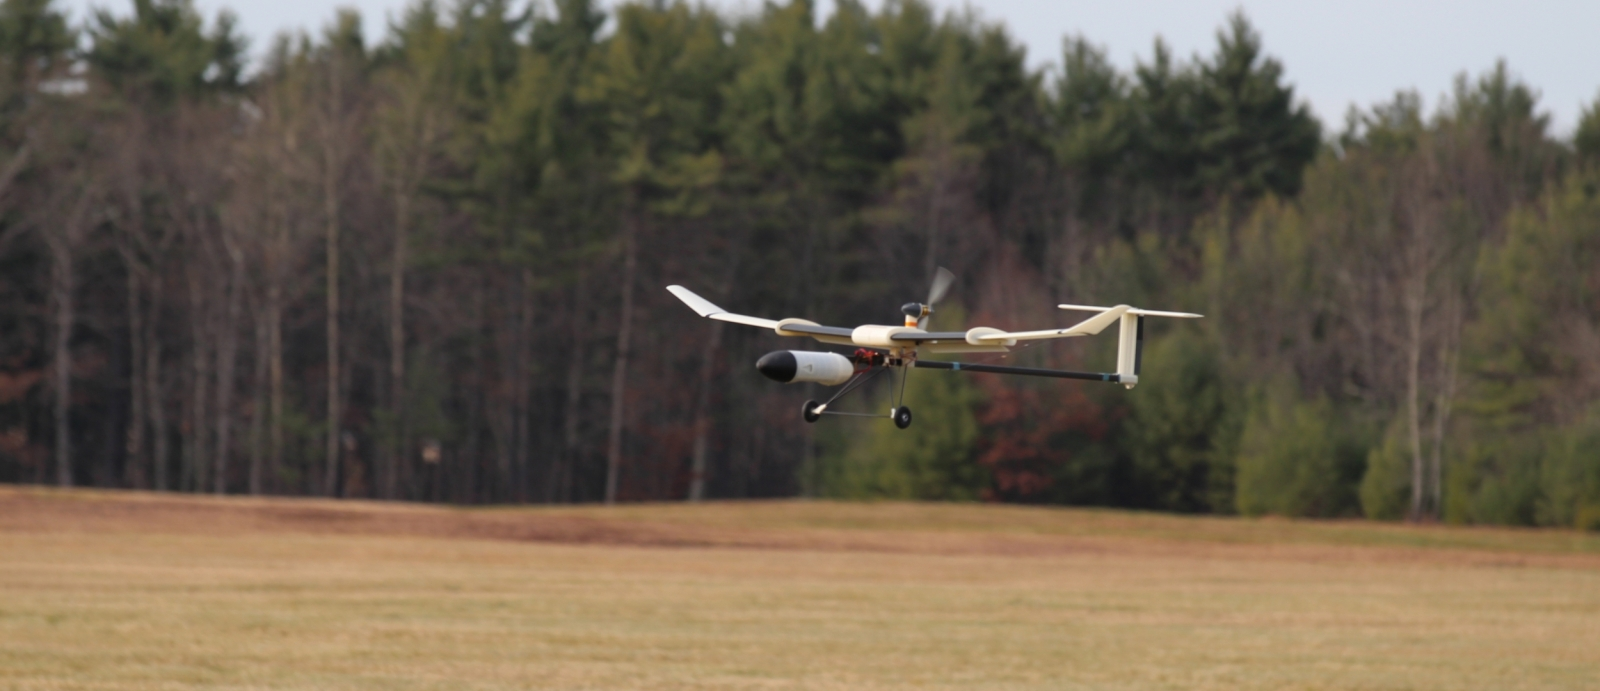 The Variable Airspeed Telescoping wing Additive manufactured Unmanned Aerial Vehicle (VAST AUAV).